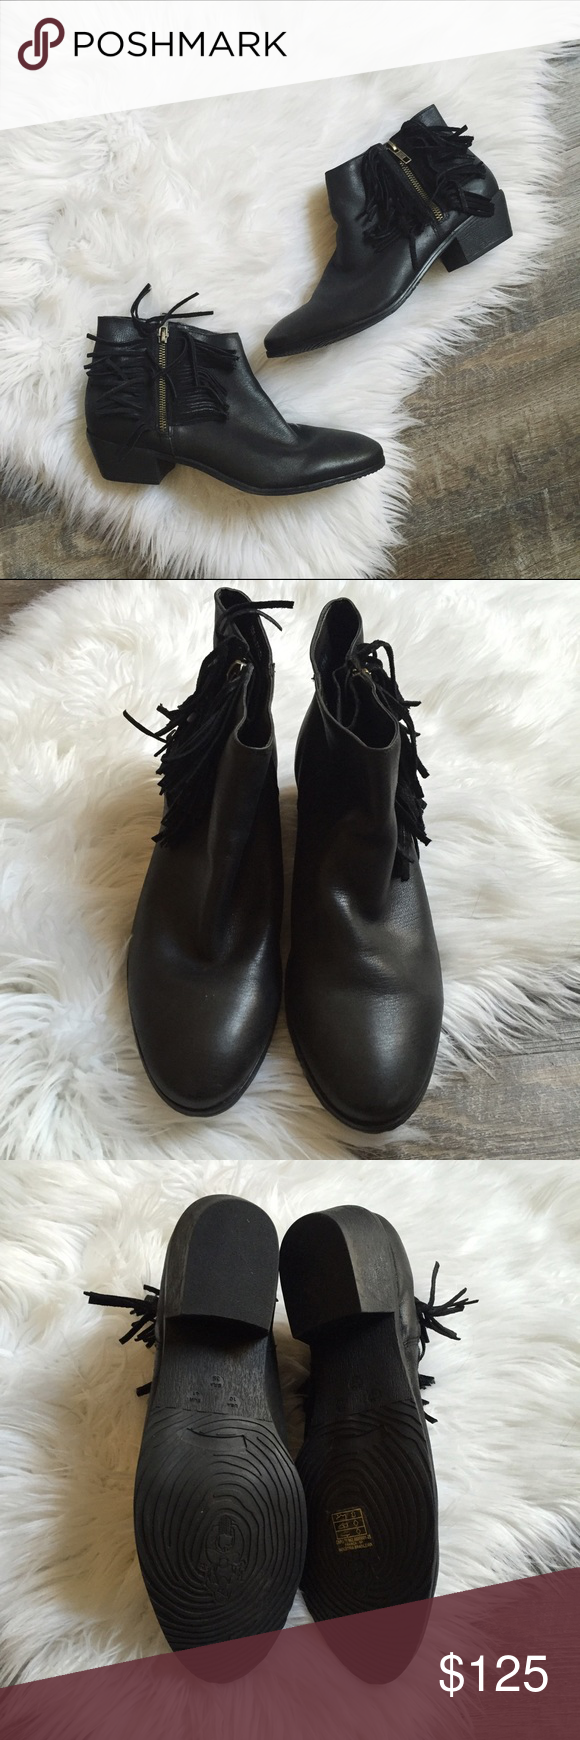 Klub Nico Anthropologie 'Meadow' Fringe Booties Black leather fringe ankle booties from Klub Nico. This brand is sold at Anthropologie, Soft Surroundings, Etc. Made in Brazil. Size US 10 and EU 41 but fit more like a size 10. In great condition, barely worn. No trades please! 🚫Feel free to make a reasonable offer. Anthropologie Shoes Ankle Boots & Booties